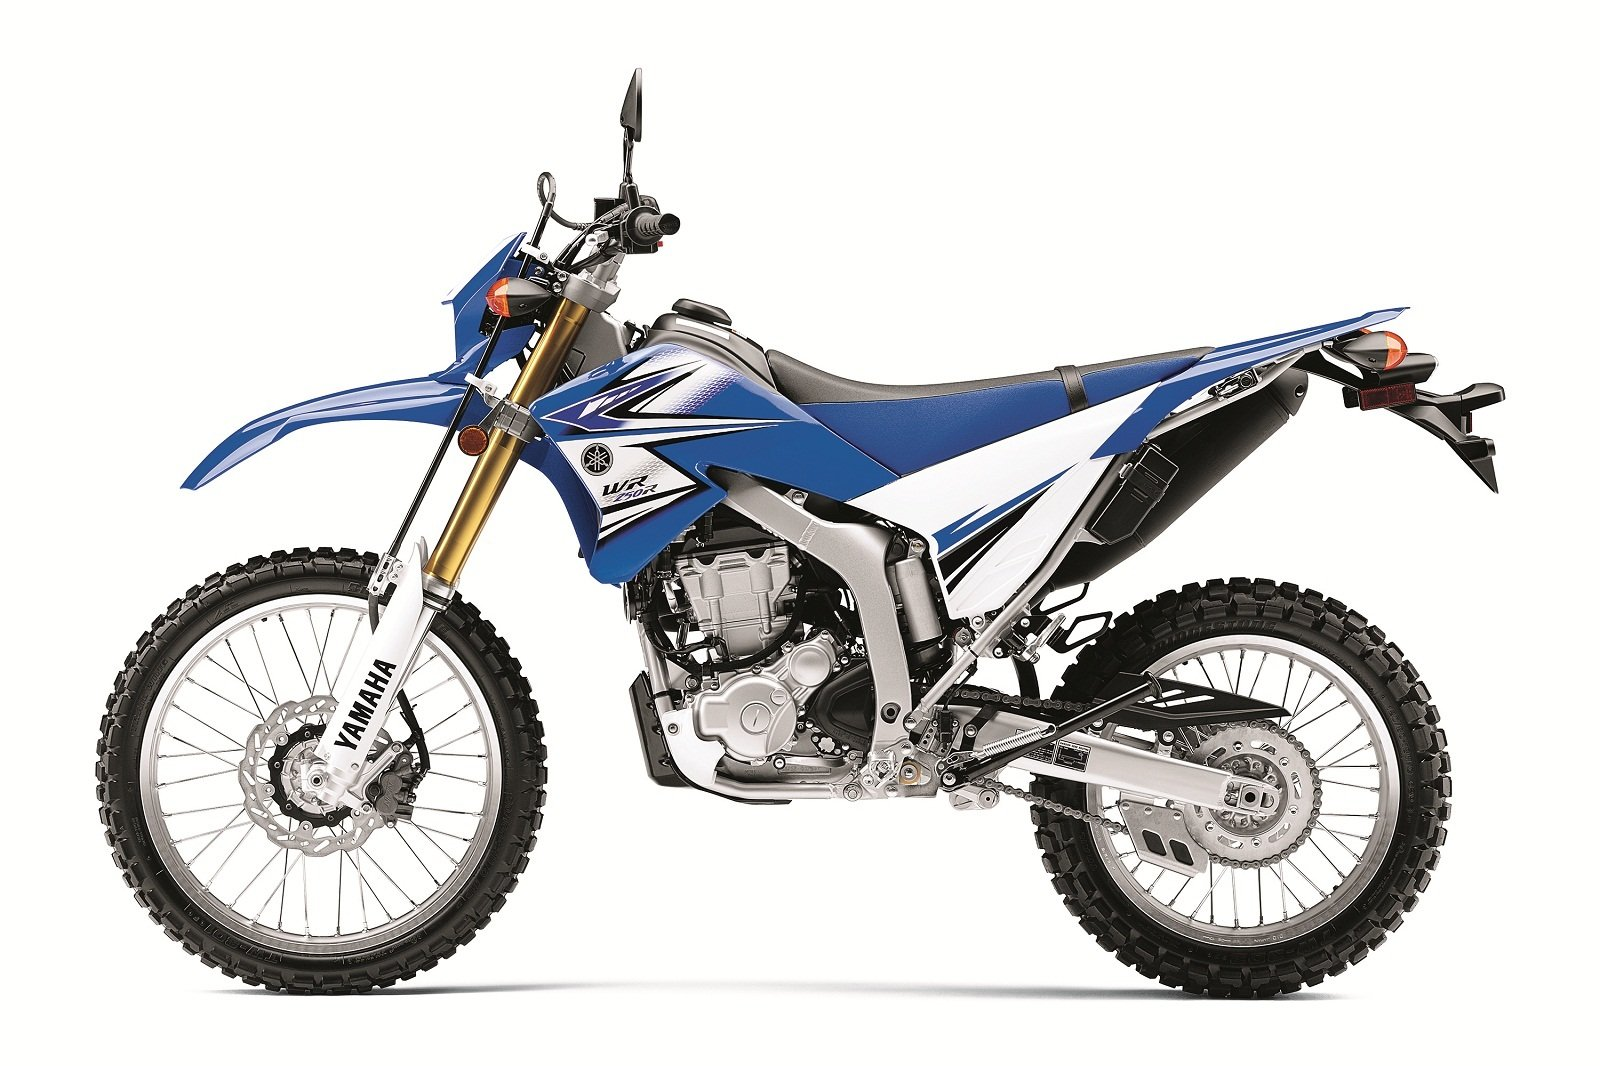 2011 yamaha wr250r picture 415304 motorcycle review for Yamaha wr250r horsepower